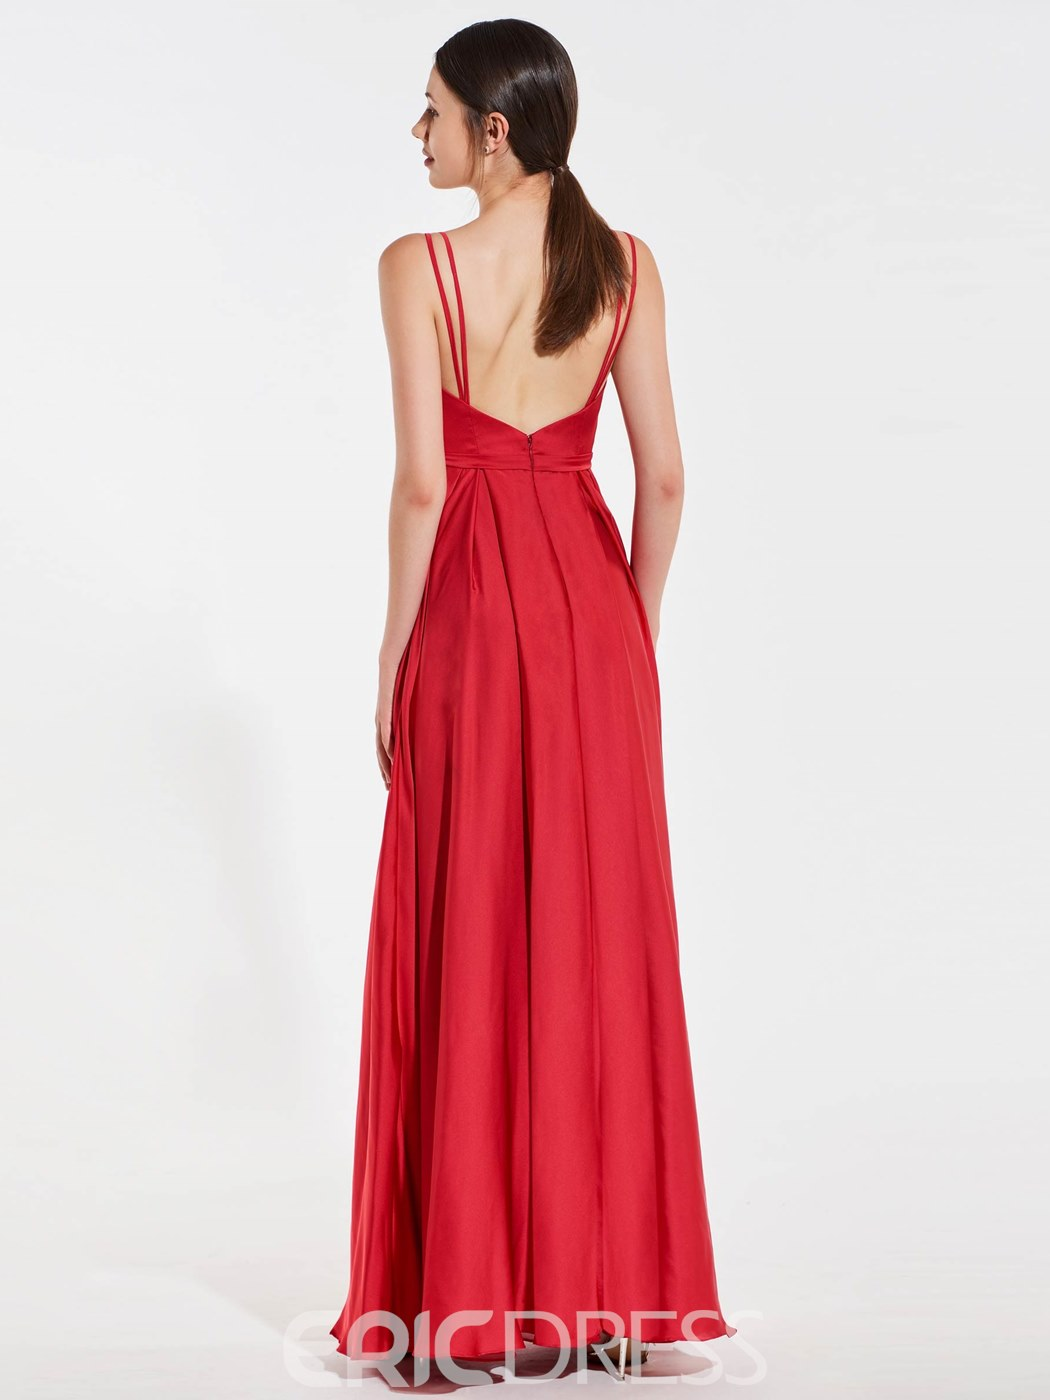 Ericdress A Line Beaded Spaghetti Straps Backless Bridesmaid Dress